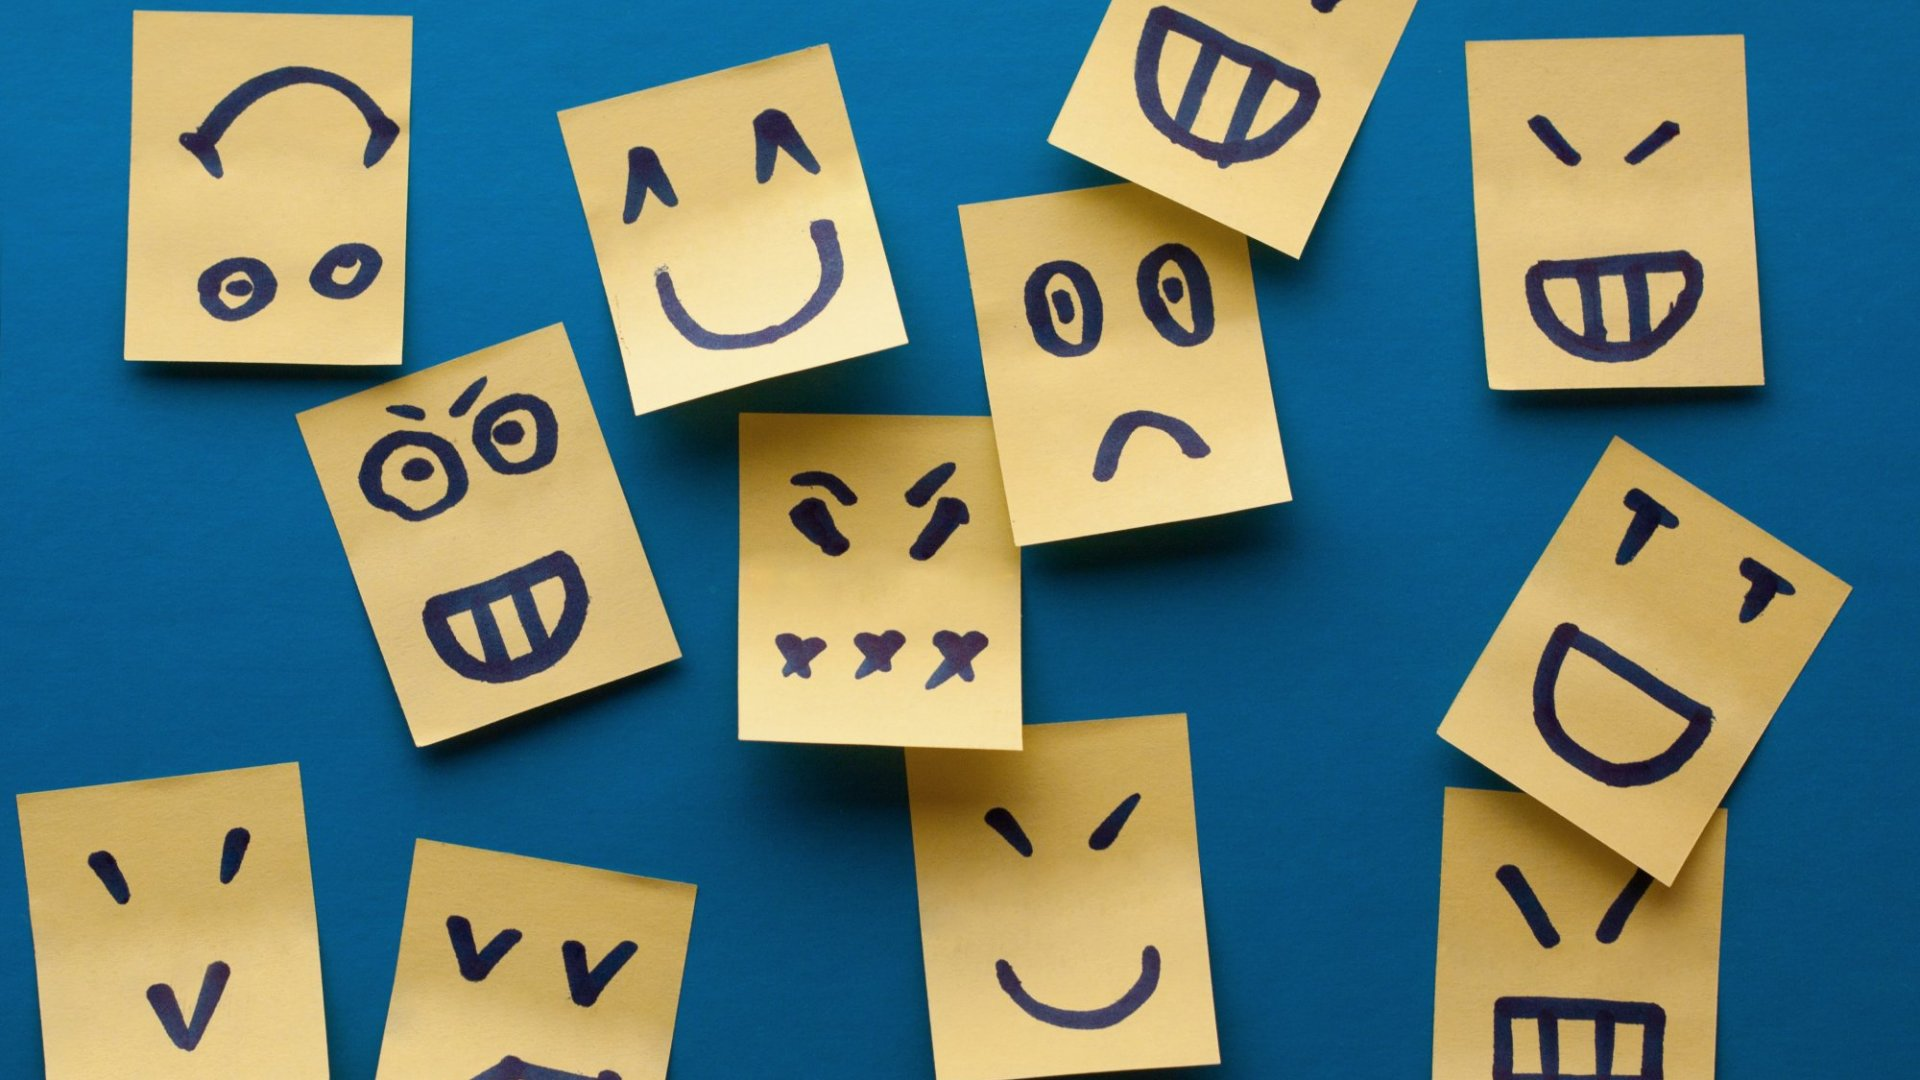 It's Time to Find Out How Our Customers Really Feel About Our Business?